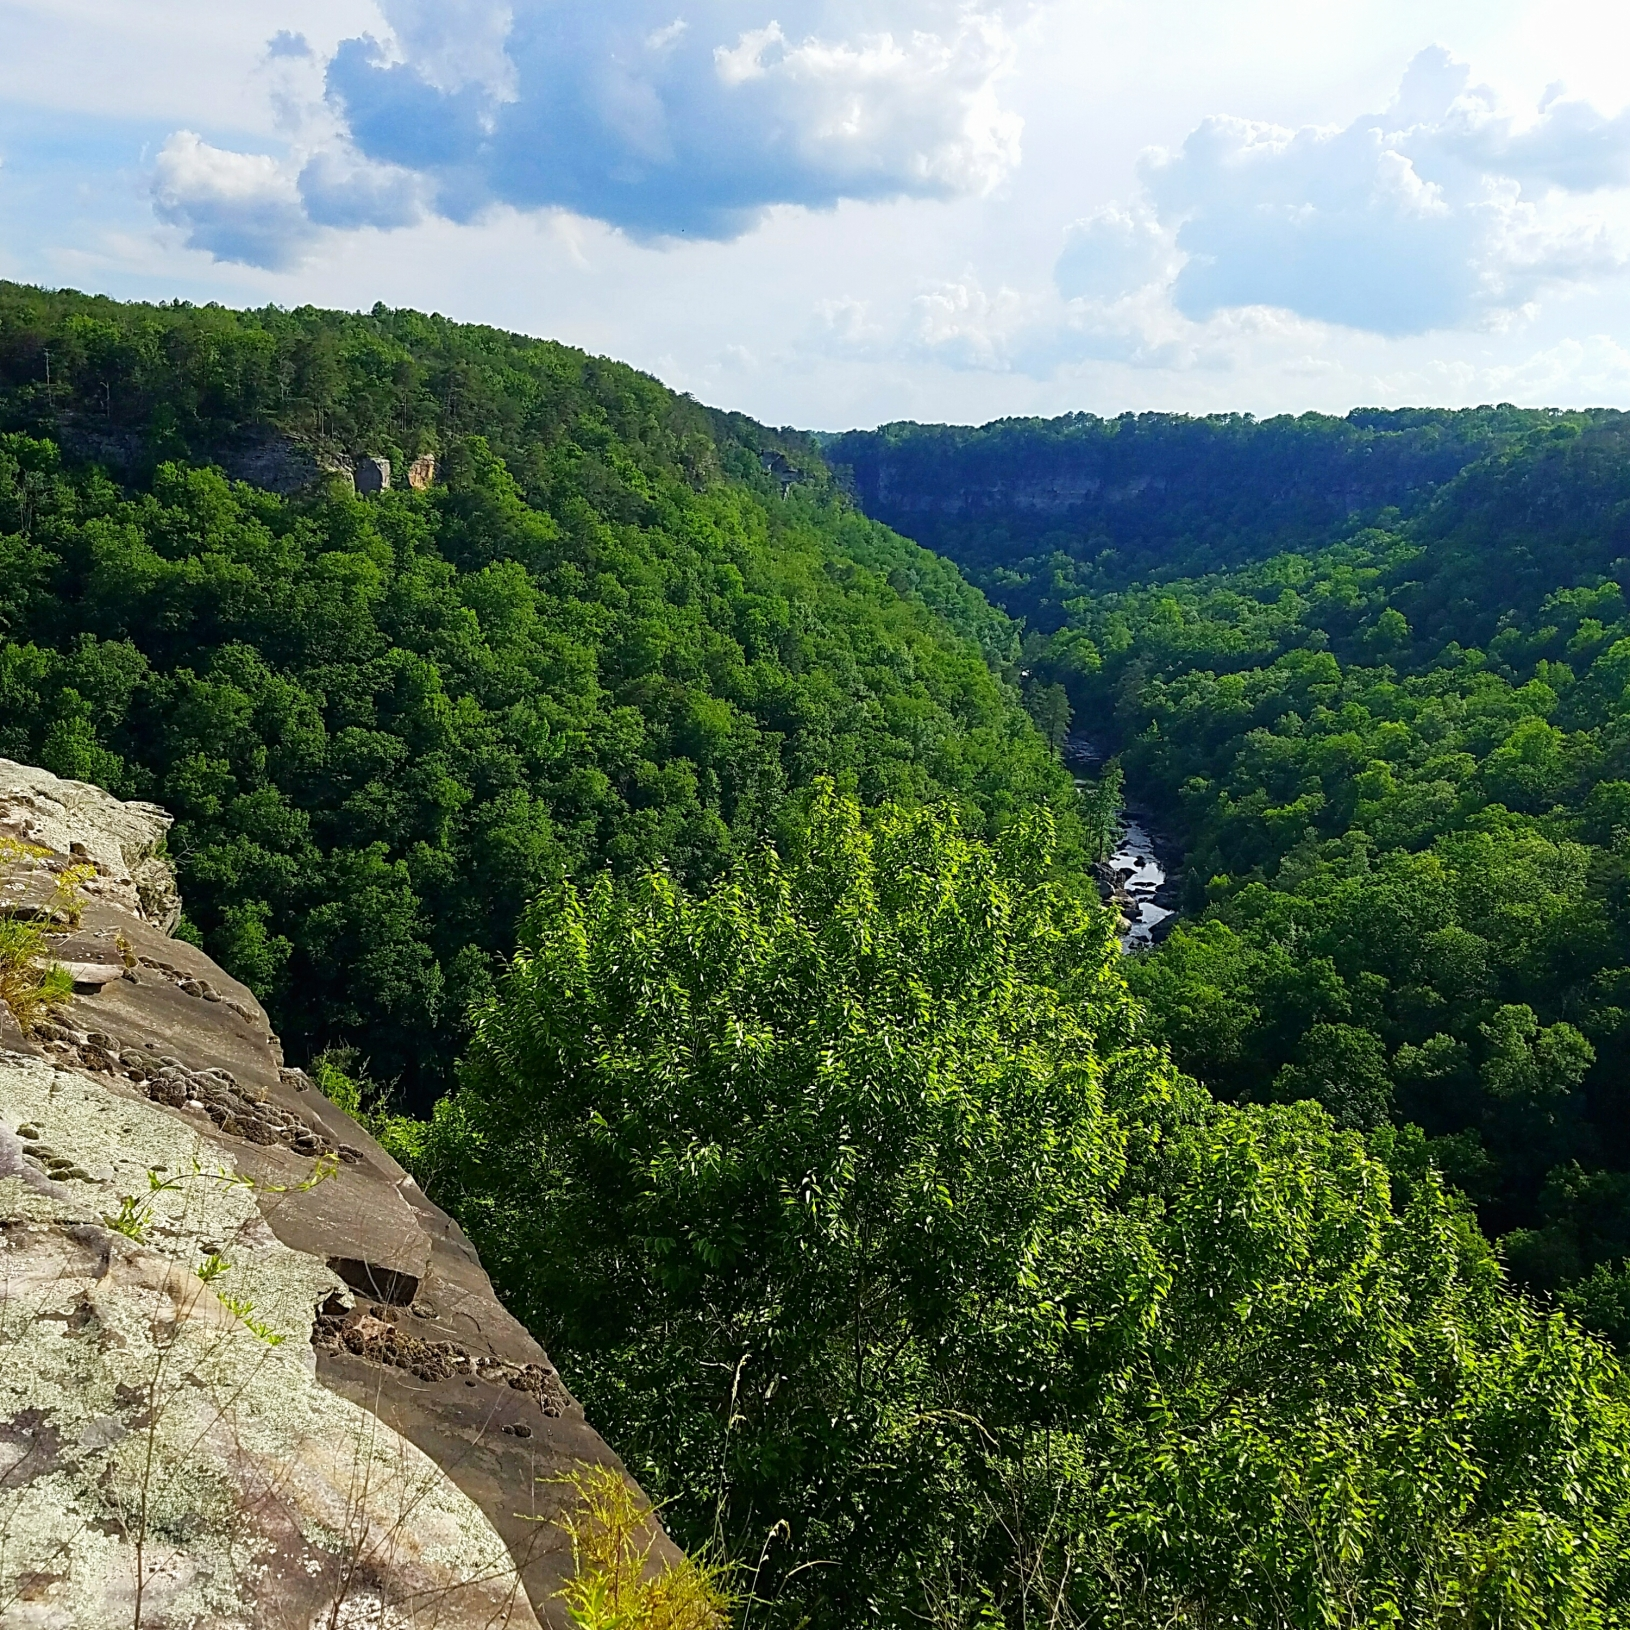 Gorgeous view of Little River Canyon in Ft Payne, Alabama as seen from Canyon View Overlook along scenic Canyon Rim Parkway